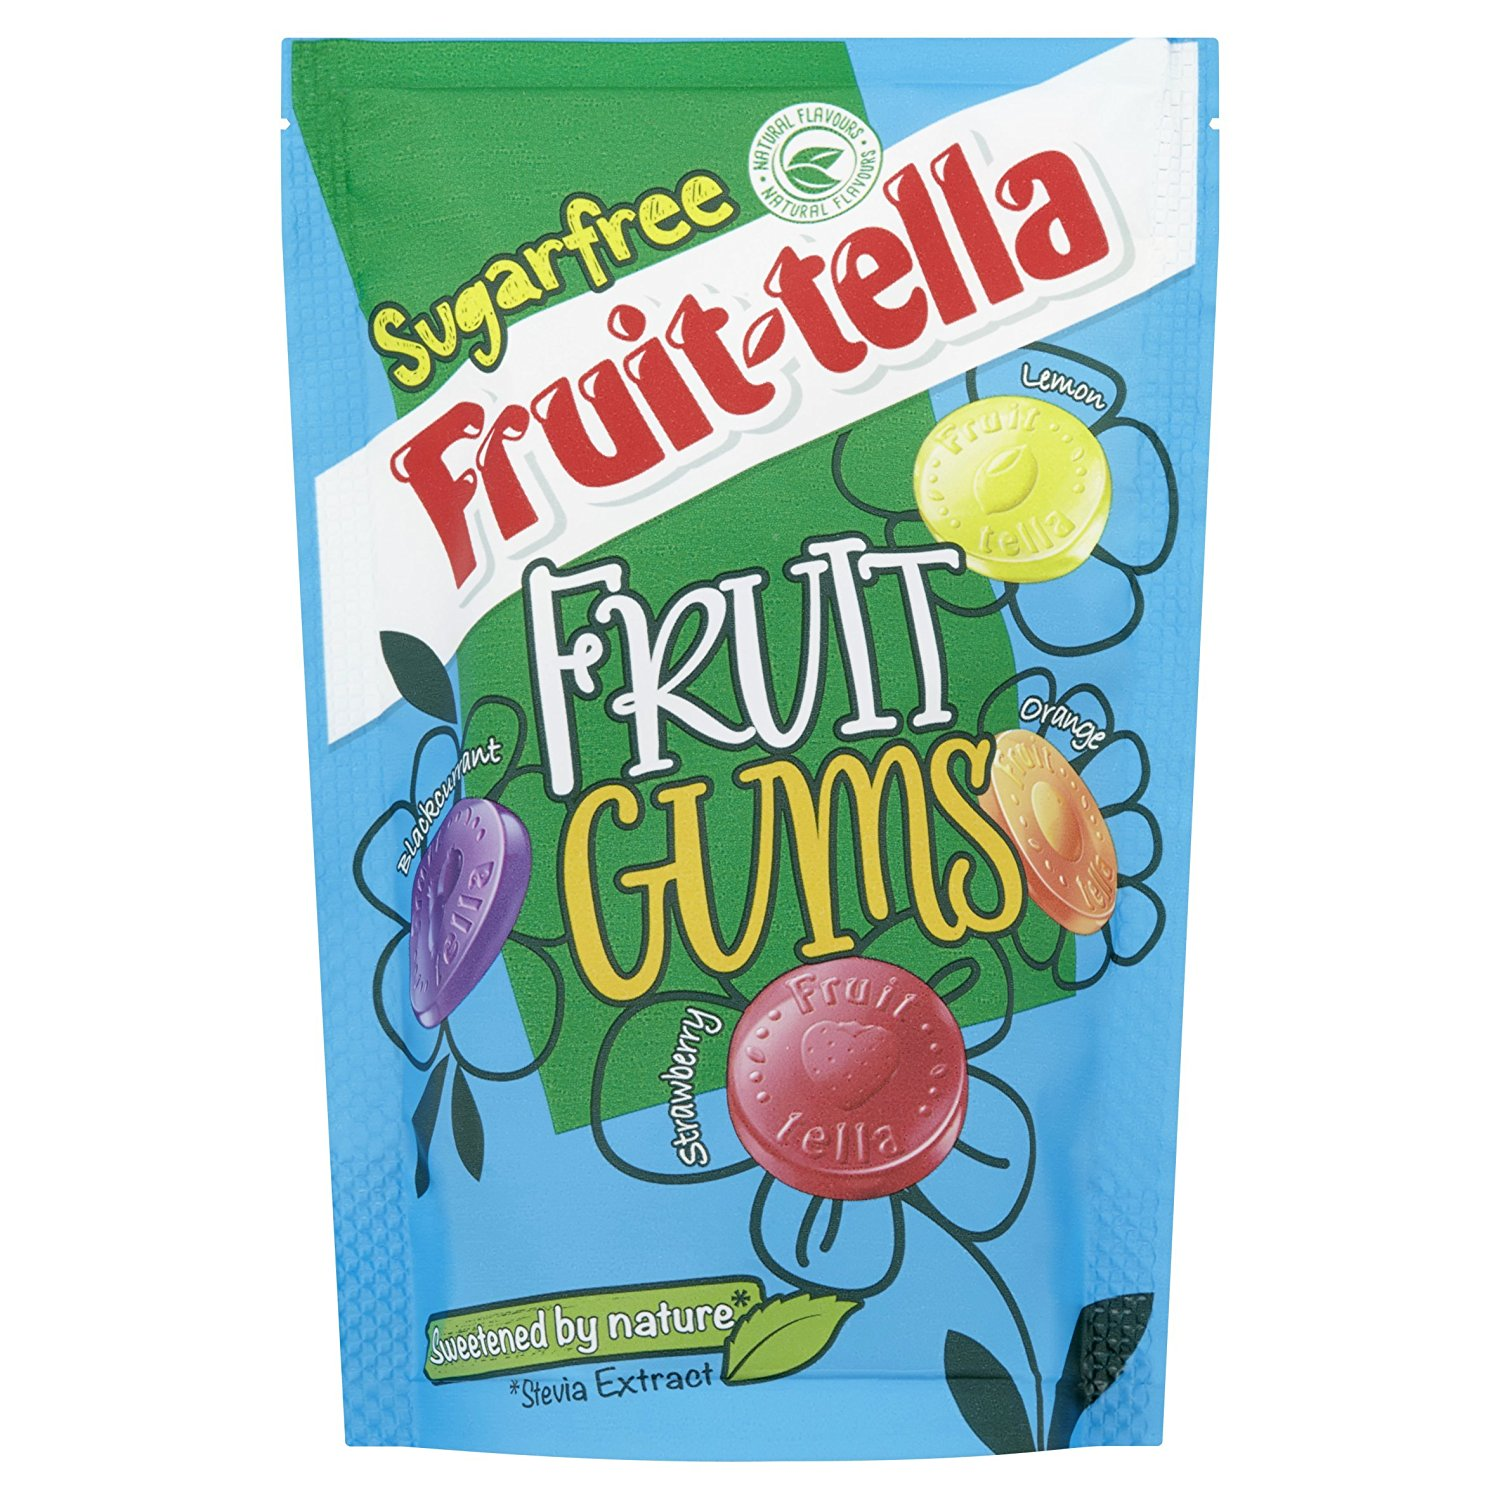 Sugar Free Fruit Snacks in Stand Up Pouch